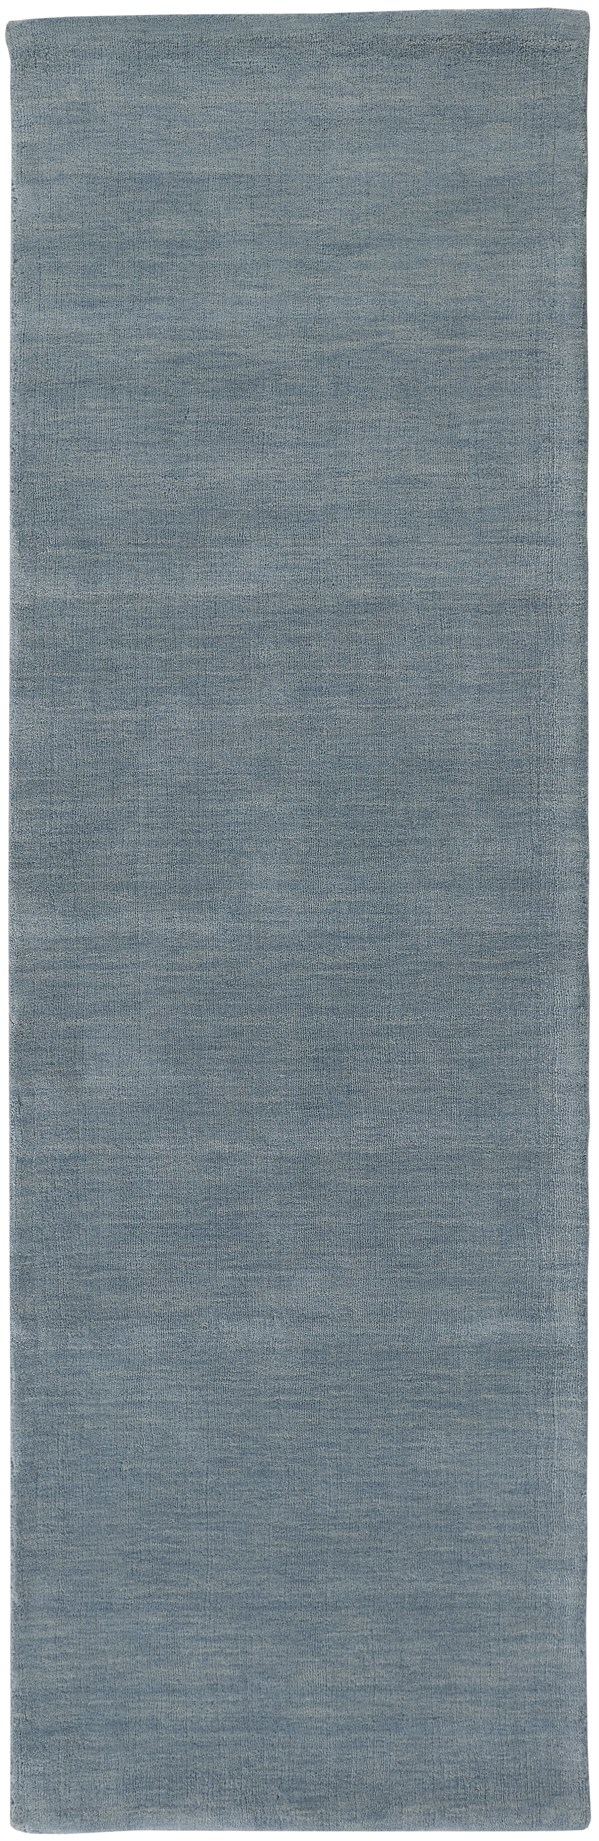 Blue Casual Area Rug